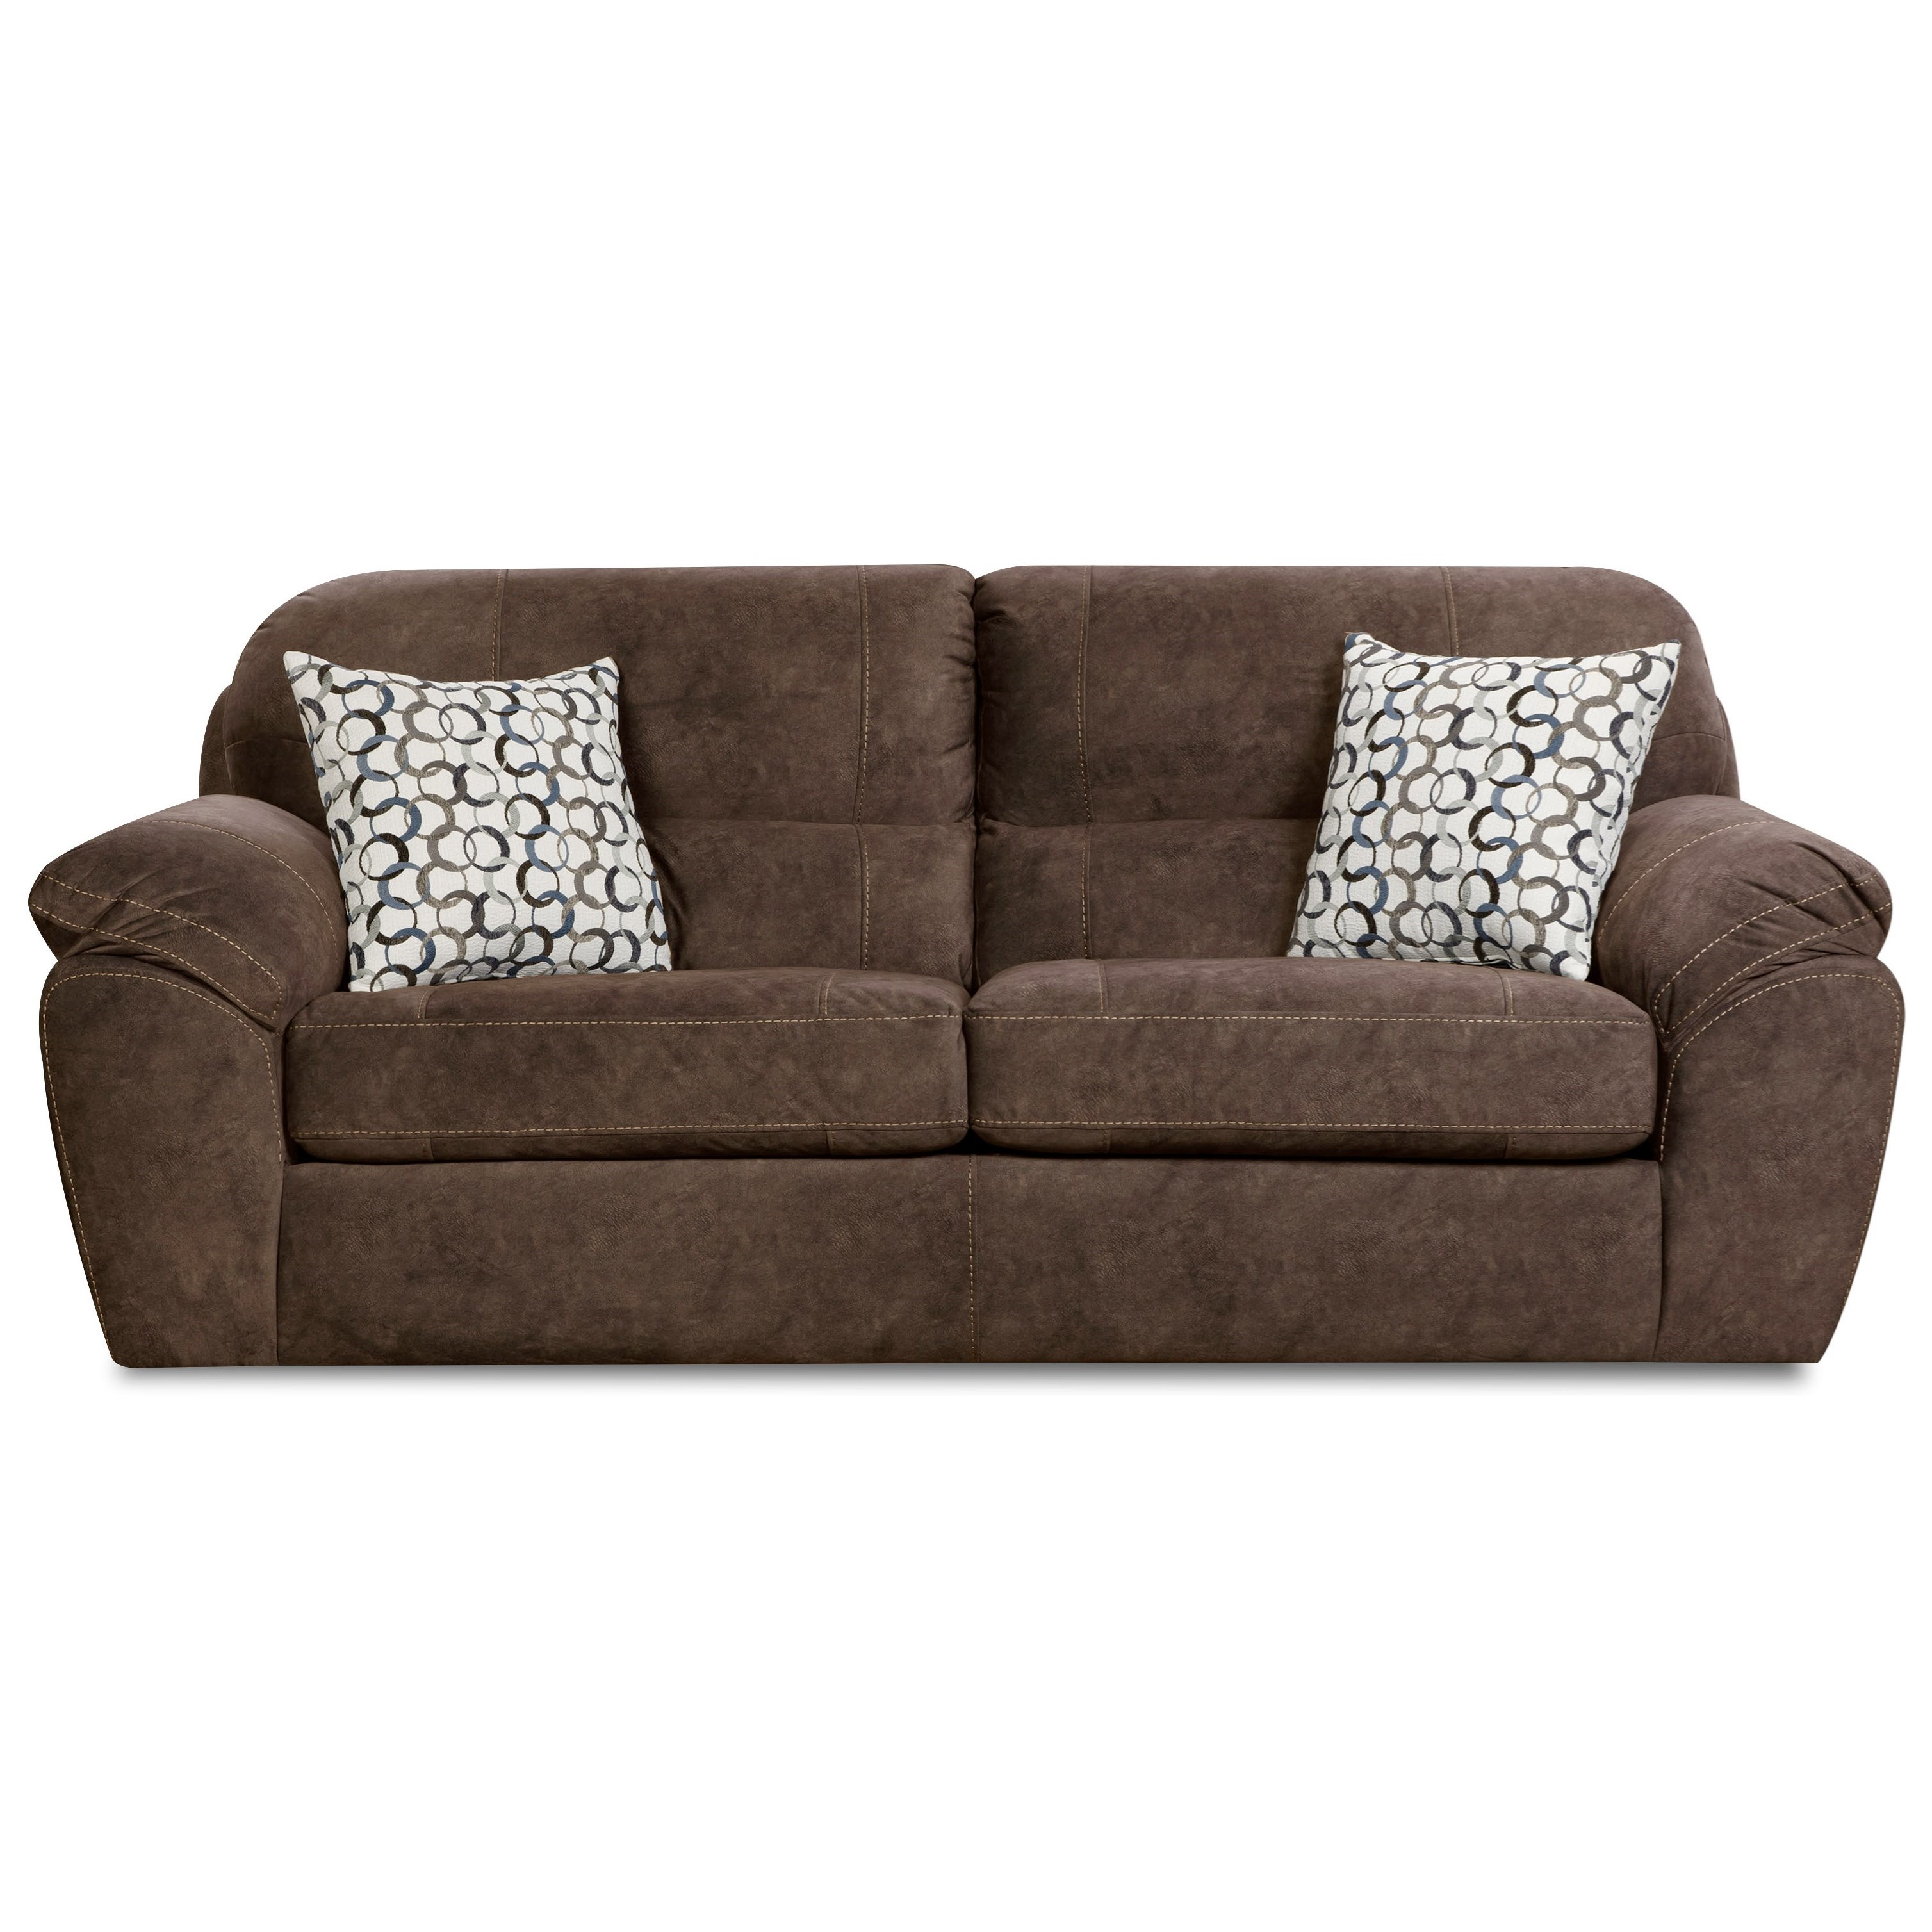 18D0 Sofa Sleeper by Corinthian at Story & Lee Furniture